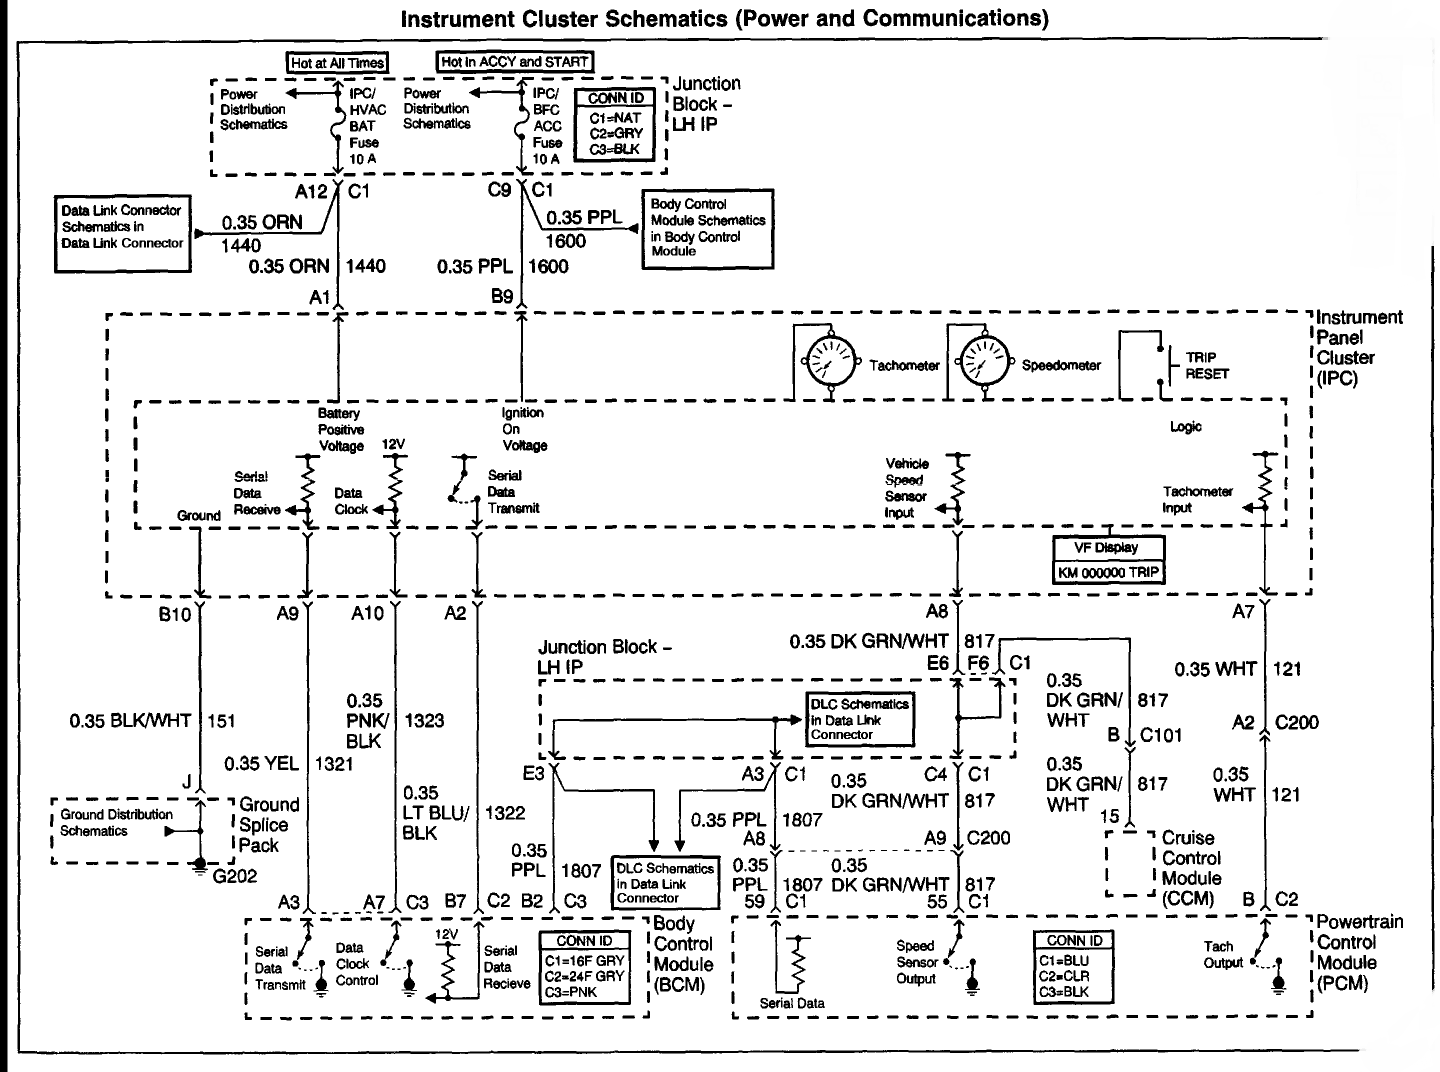 2013 04 04_014930_1 2001 chevy malibu wiring diagram 2005 chevy malibu radio wiring 2011 chevy malibu wiring diagram at honlapkeszites.co